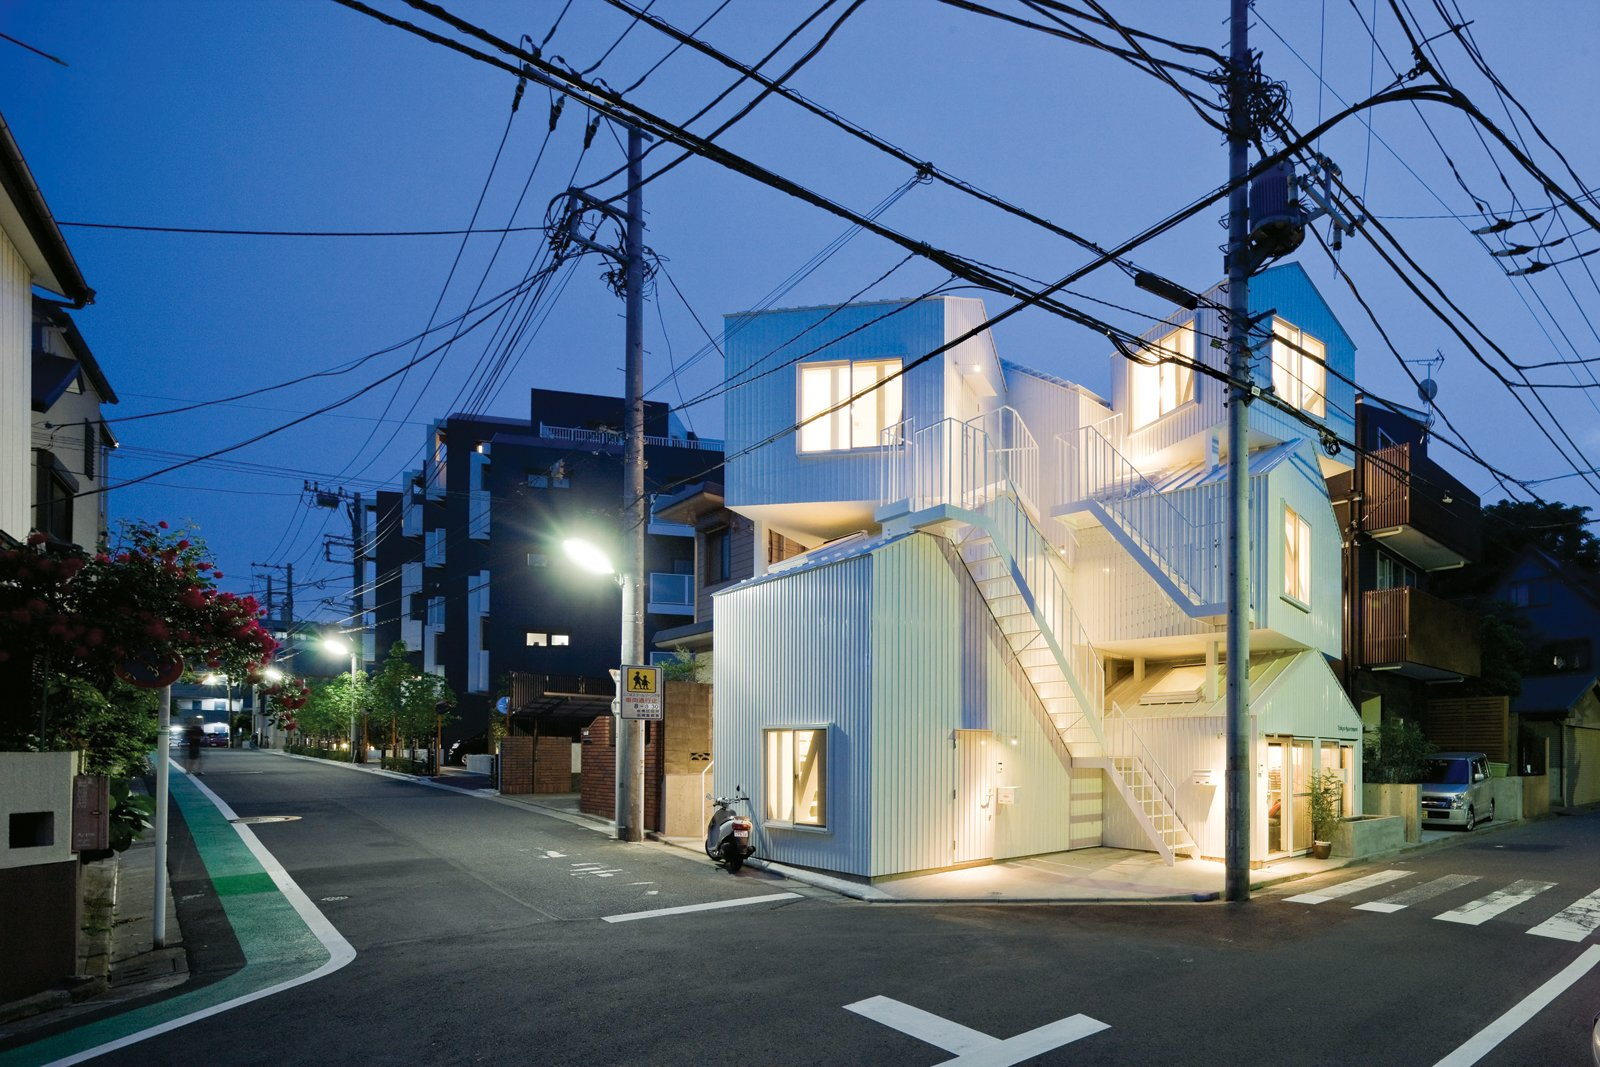 Resembling a jumble of houses piled on top of one another, the dynamic Tokyo Apartment building from 2010 evokes the chaos and crowding of Tokyo. Adding to the complexity, the dwelling units do not correspond to the house forms. Instead, stairs and ladders link individual tenant spaces that span the different pitched-roof volumes.  The building sits on a corner site amid a quiet residential neighborhood.  Photo 3 of 6 in Architect We Love: Sou Fujimoto